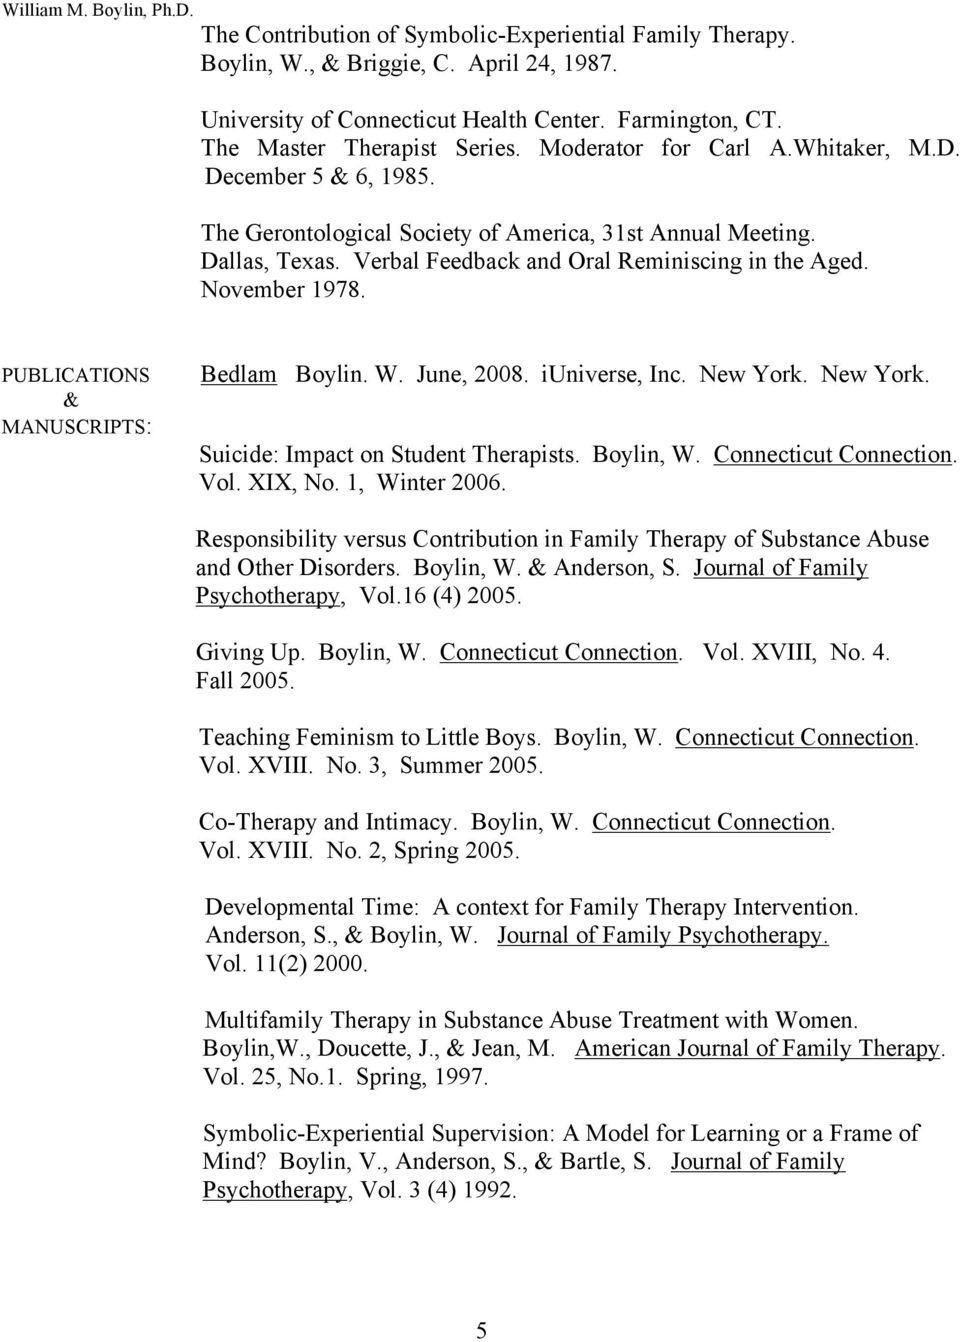 PUBLICATIONS & MANUSCRIPTS: Bedlam Boylin. W. June, 2008. iuniverse, Inc. New York. New York. Suicide: Impact on Student Therapists. Boylin, W. Connecticut Connection. Vol. XIX, No. 1, Winter 2006.